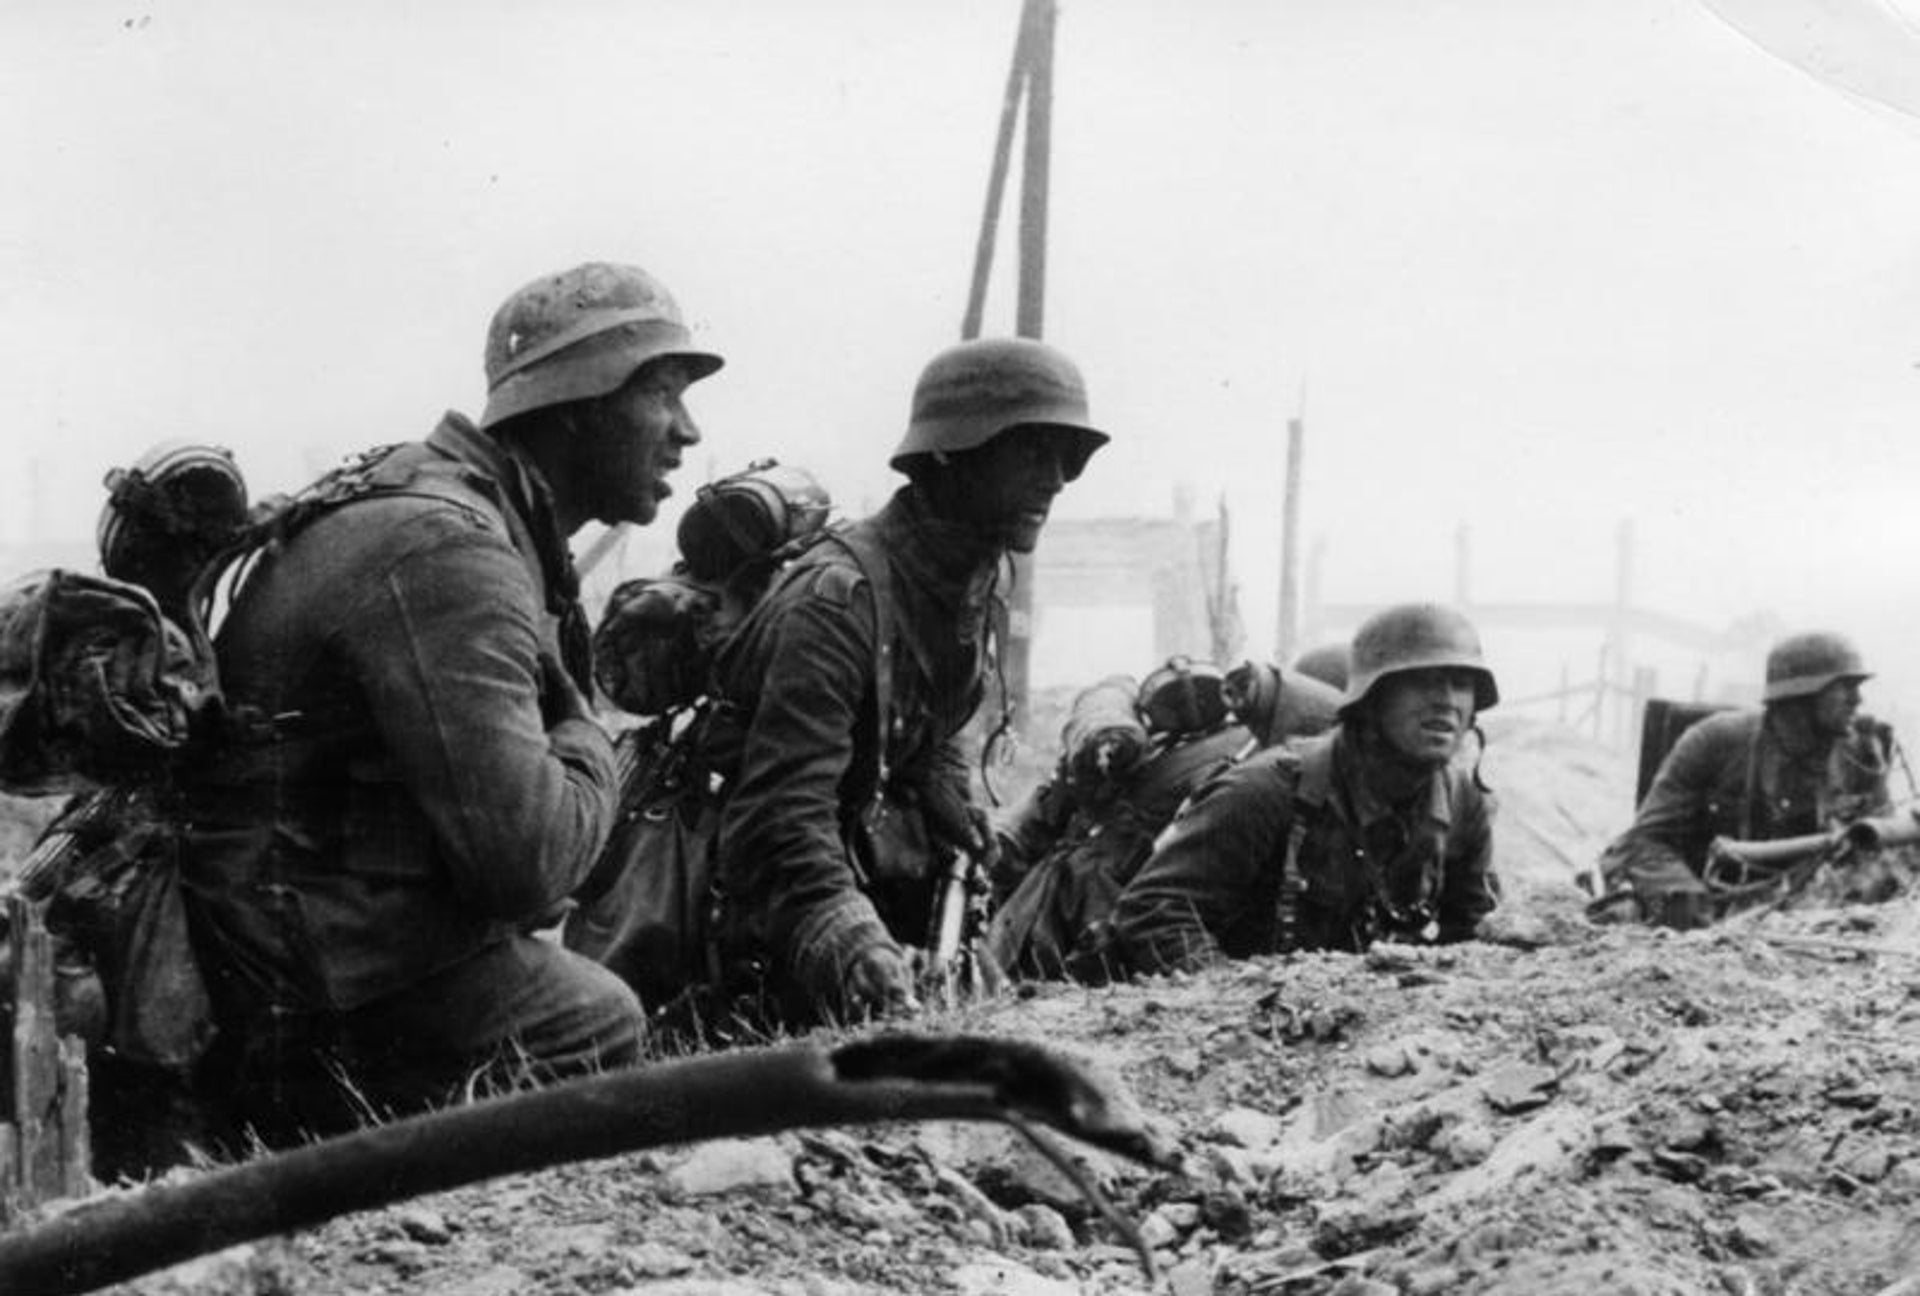 German Infantry in position for attack during the Battle of Stalingrad.